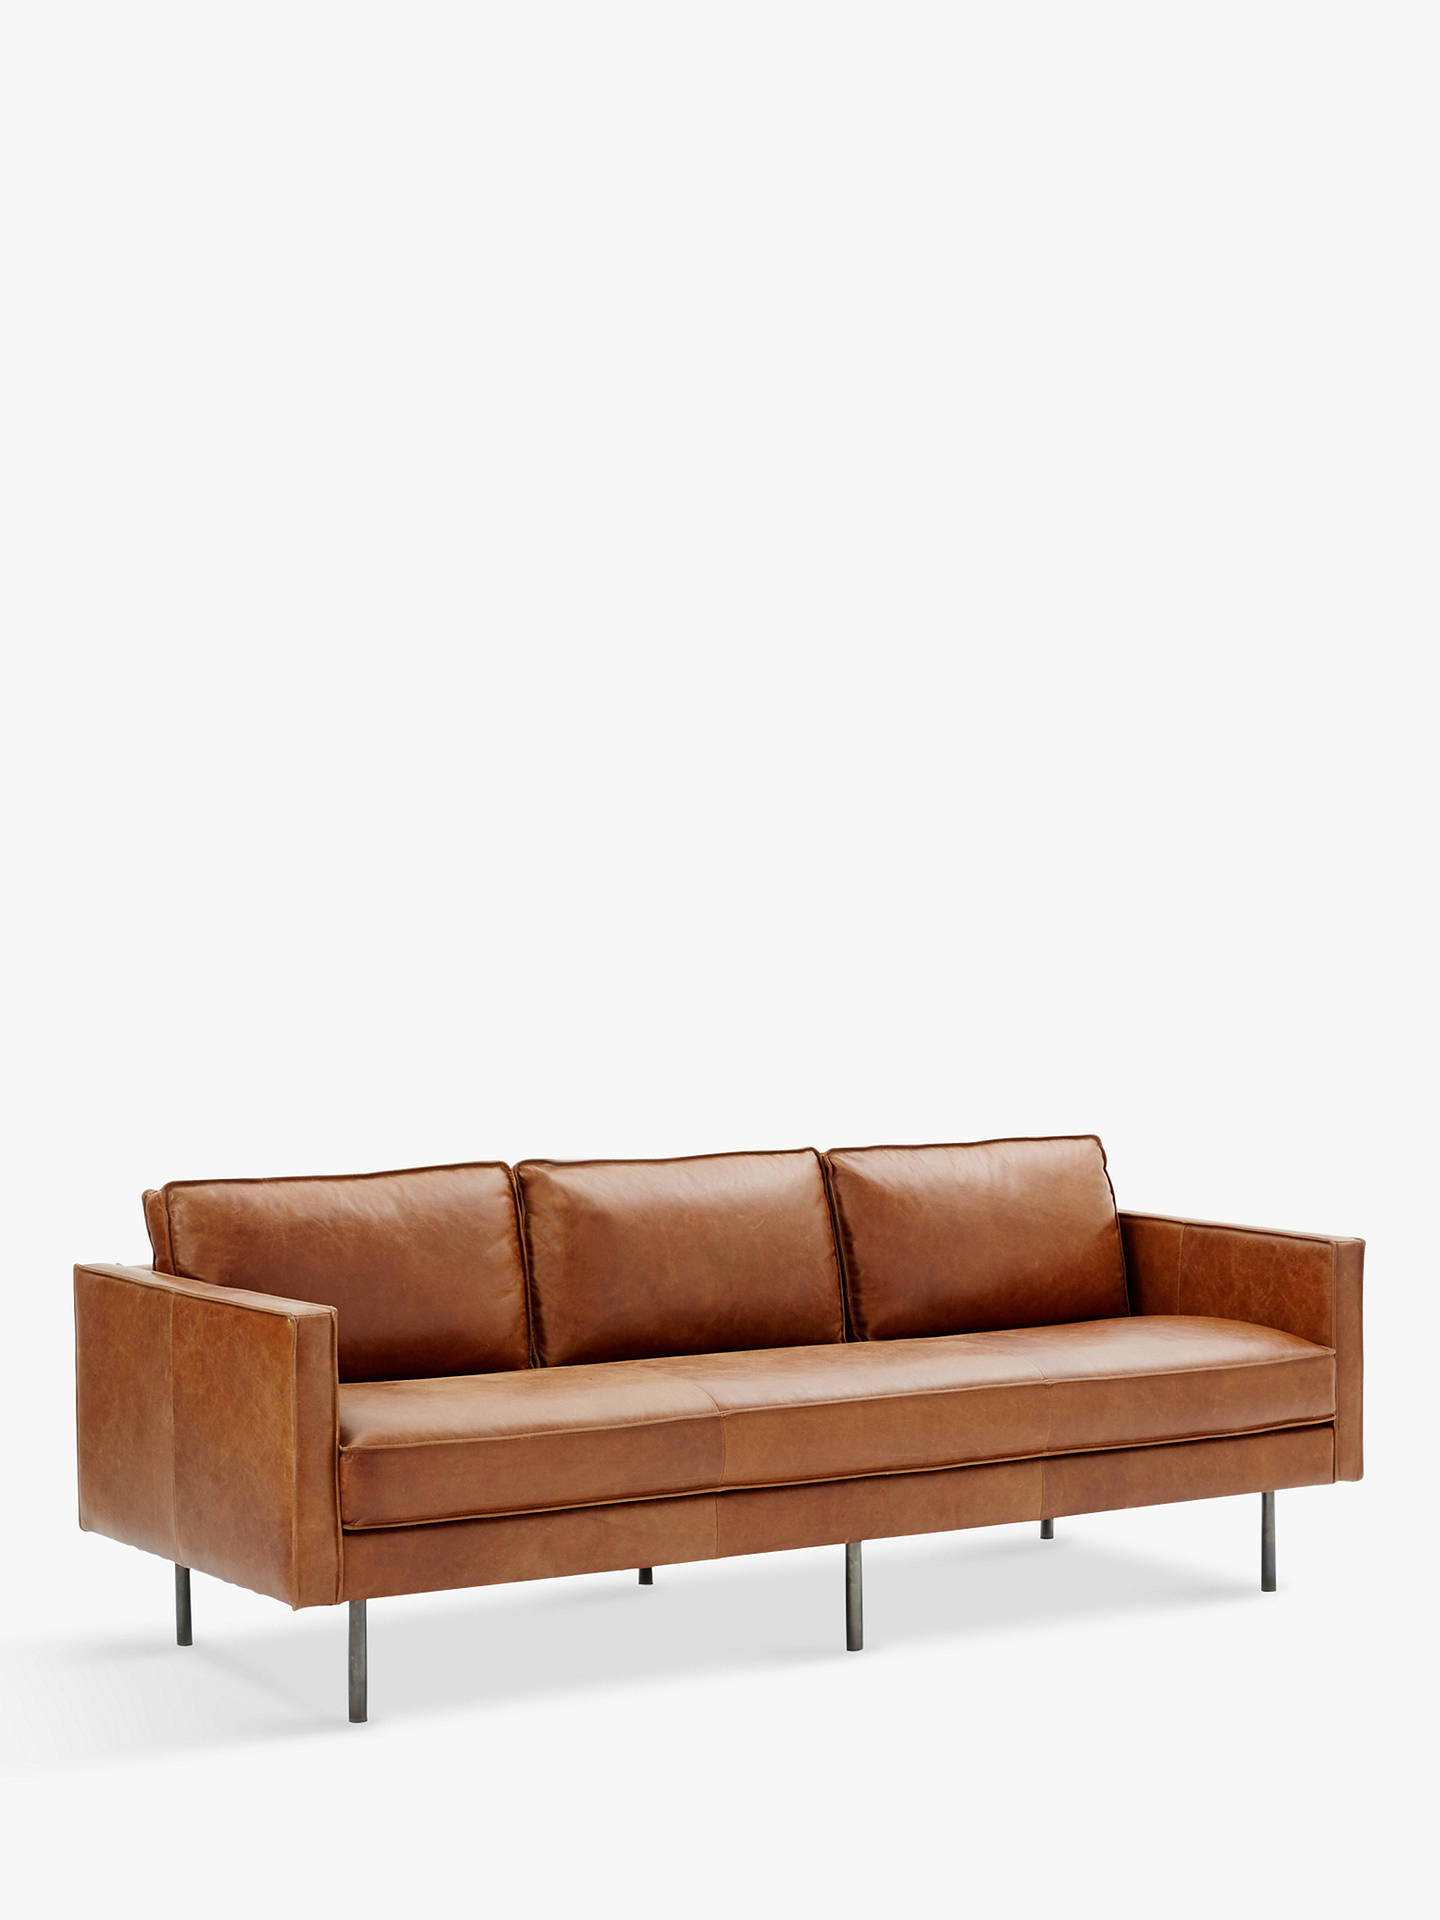 West Elm Axel Large 3 Seater Sofa Sienna Leather Online At Johnlewis